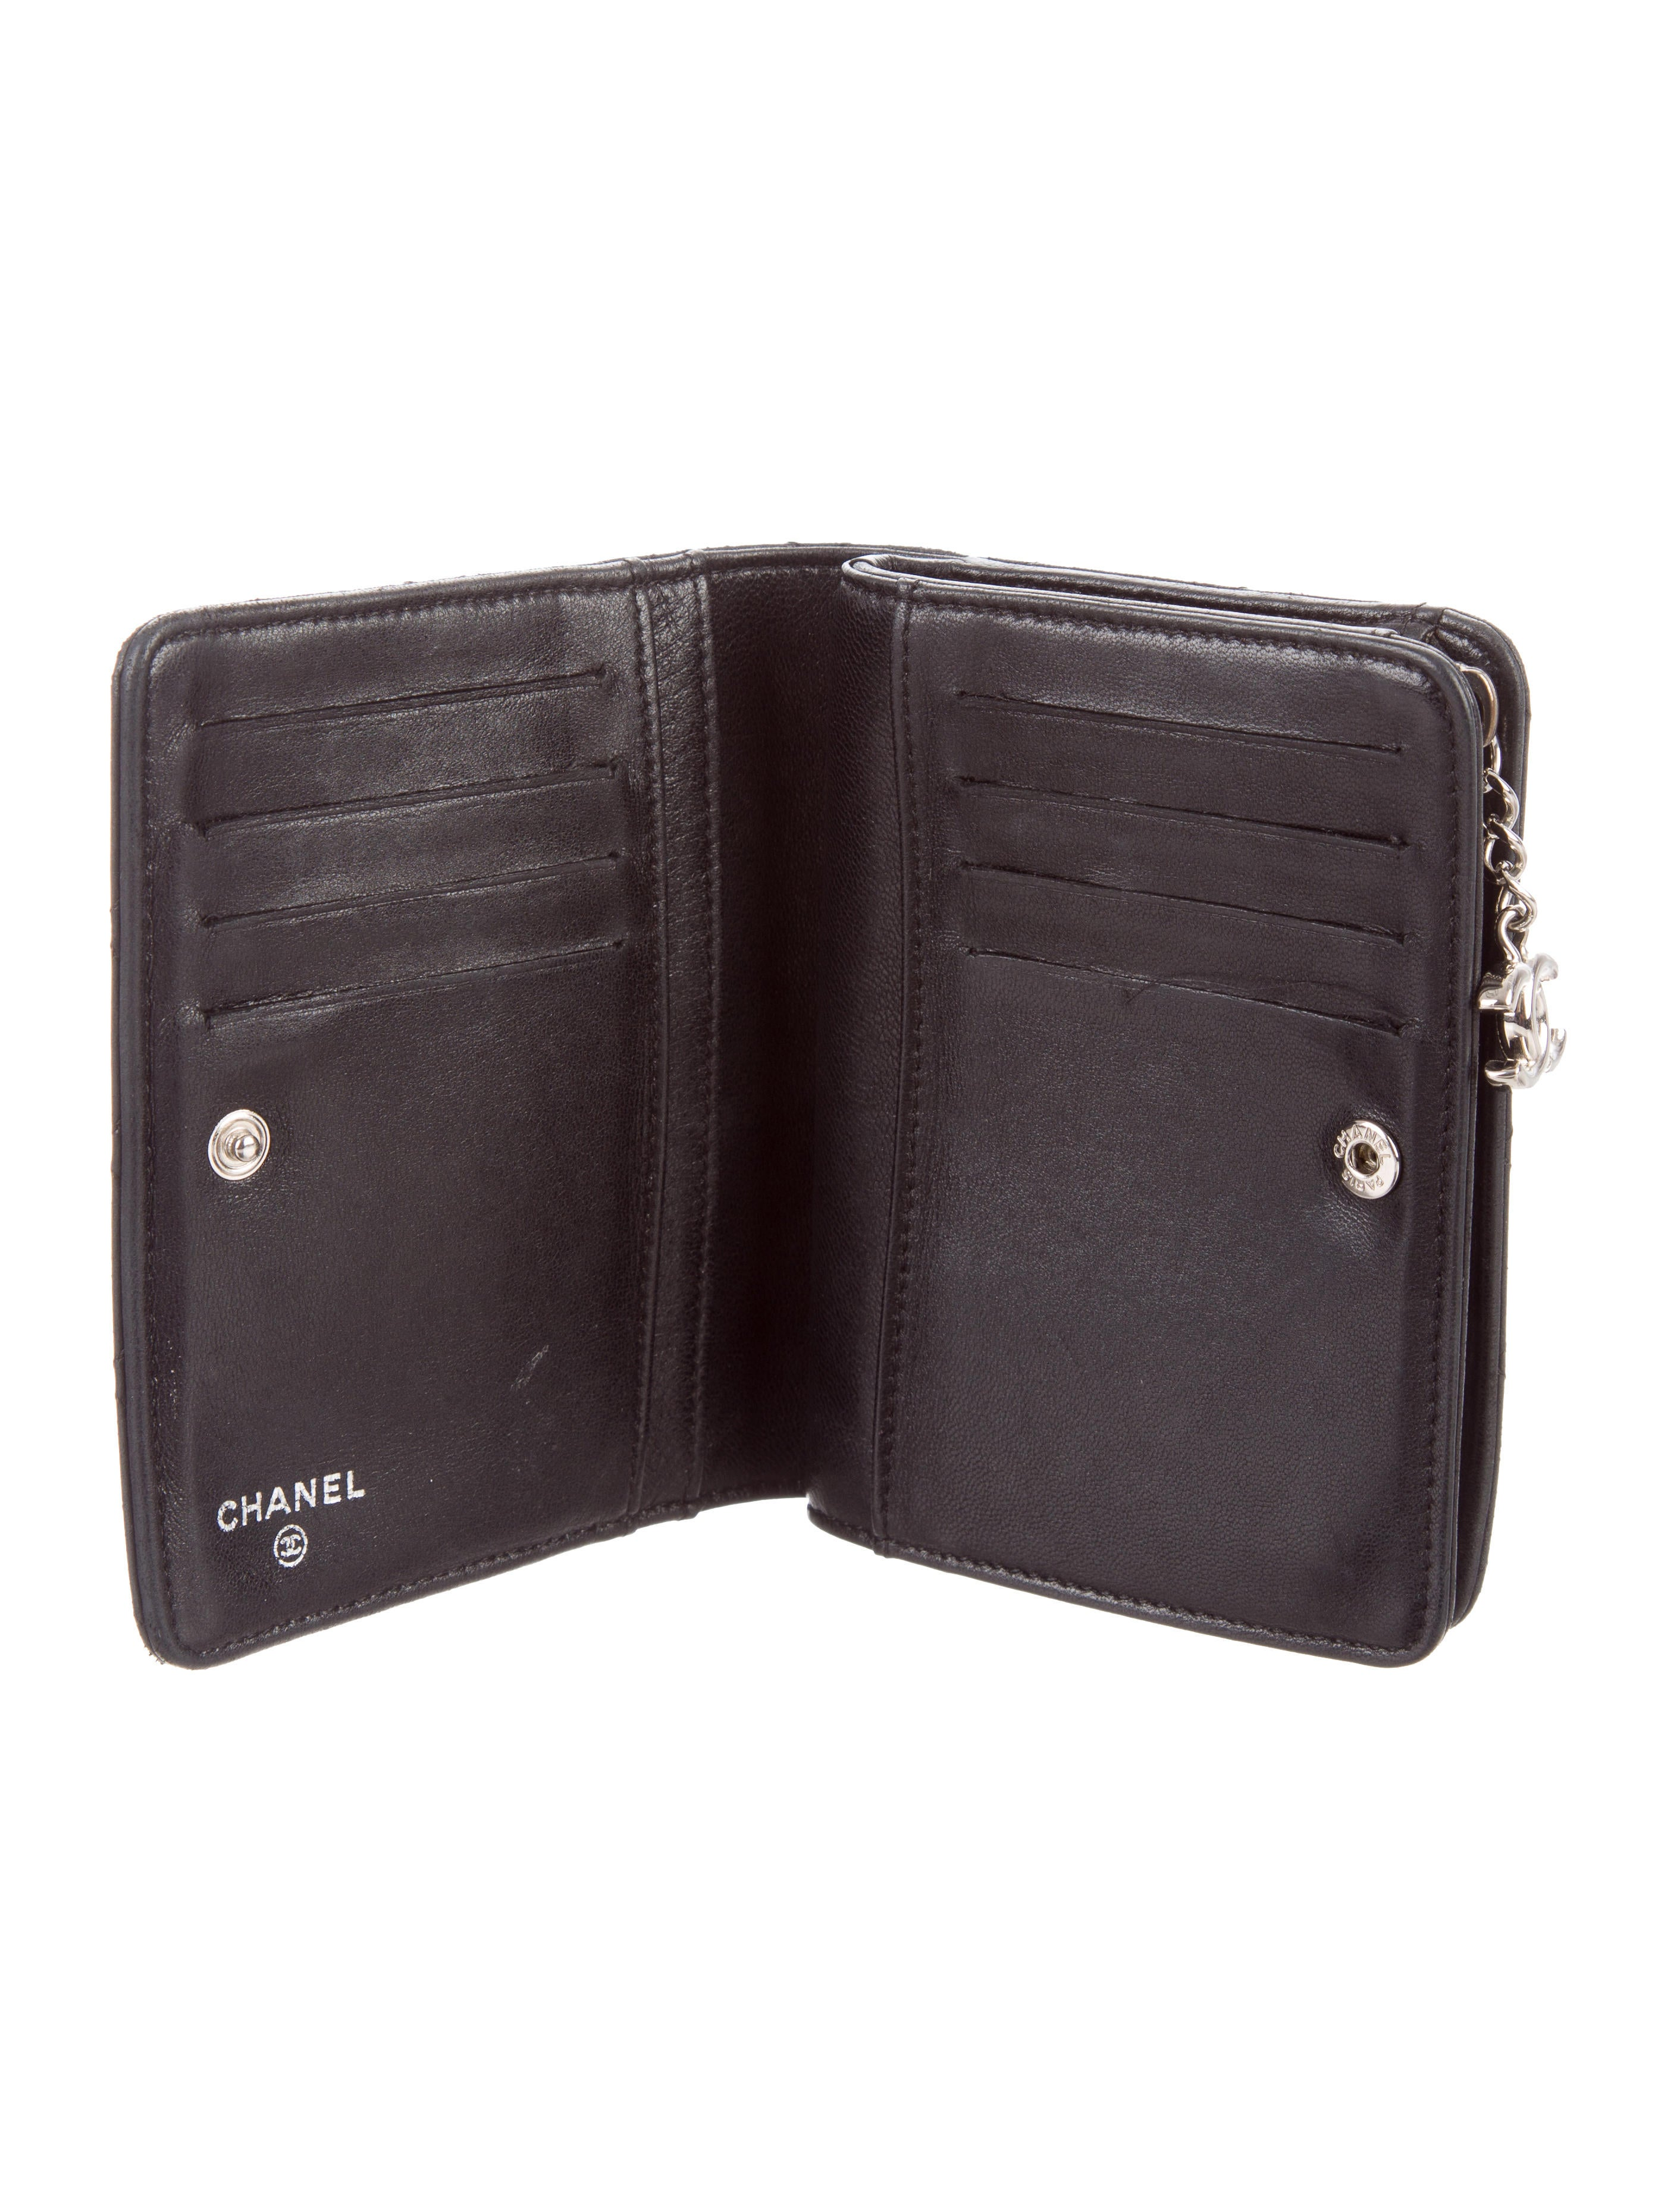 Chanel Quilted Lambskin Compact Wallet Accessories